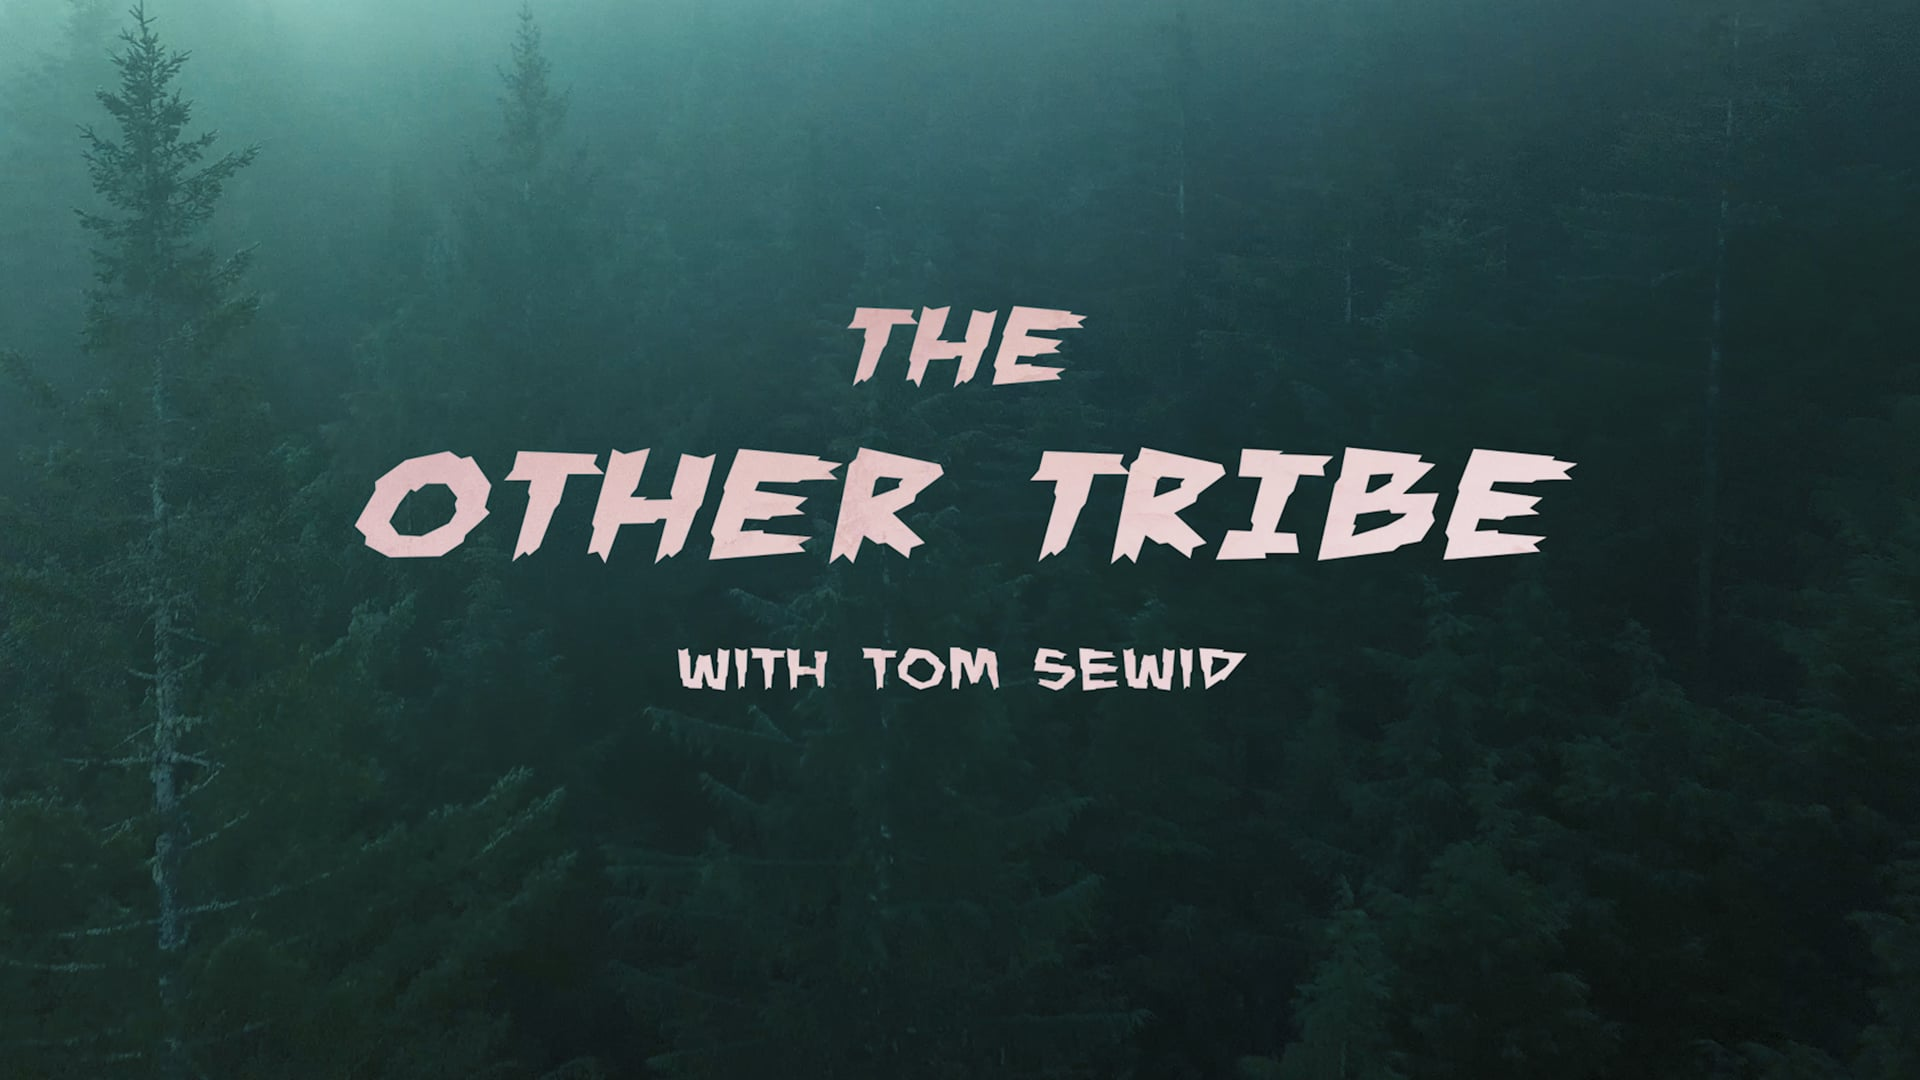 The Other Tribe with Tom Sewid [TEASER]